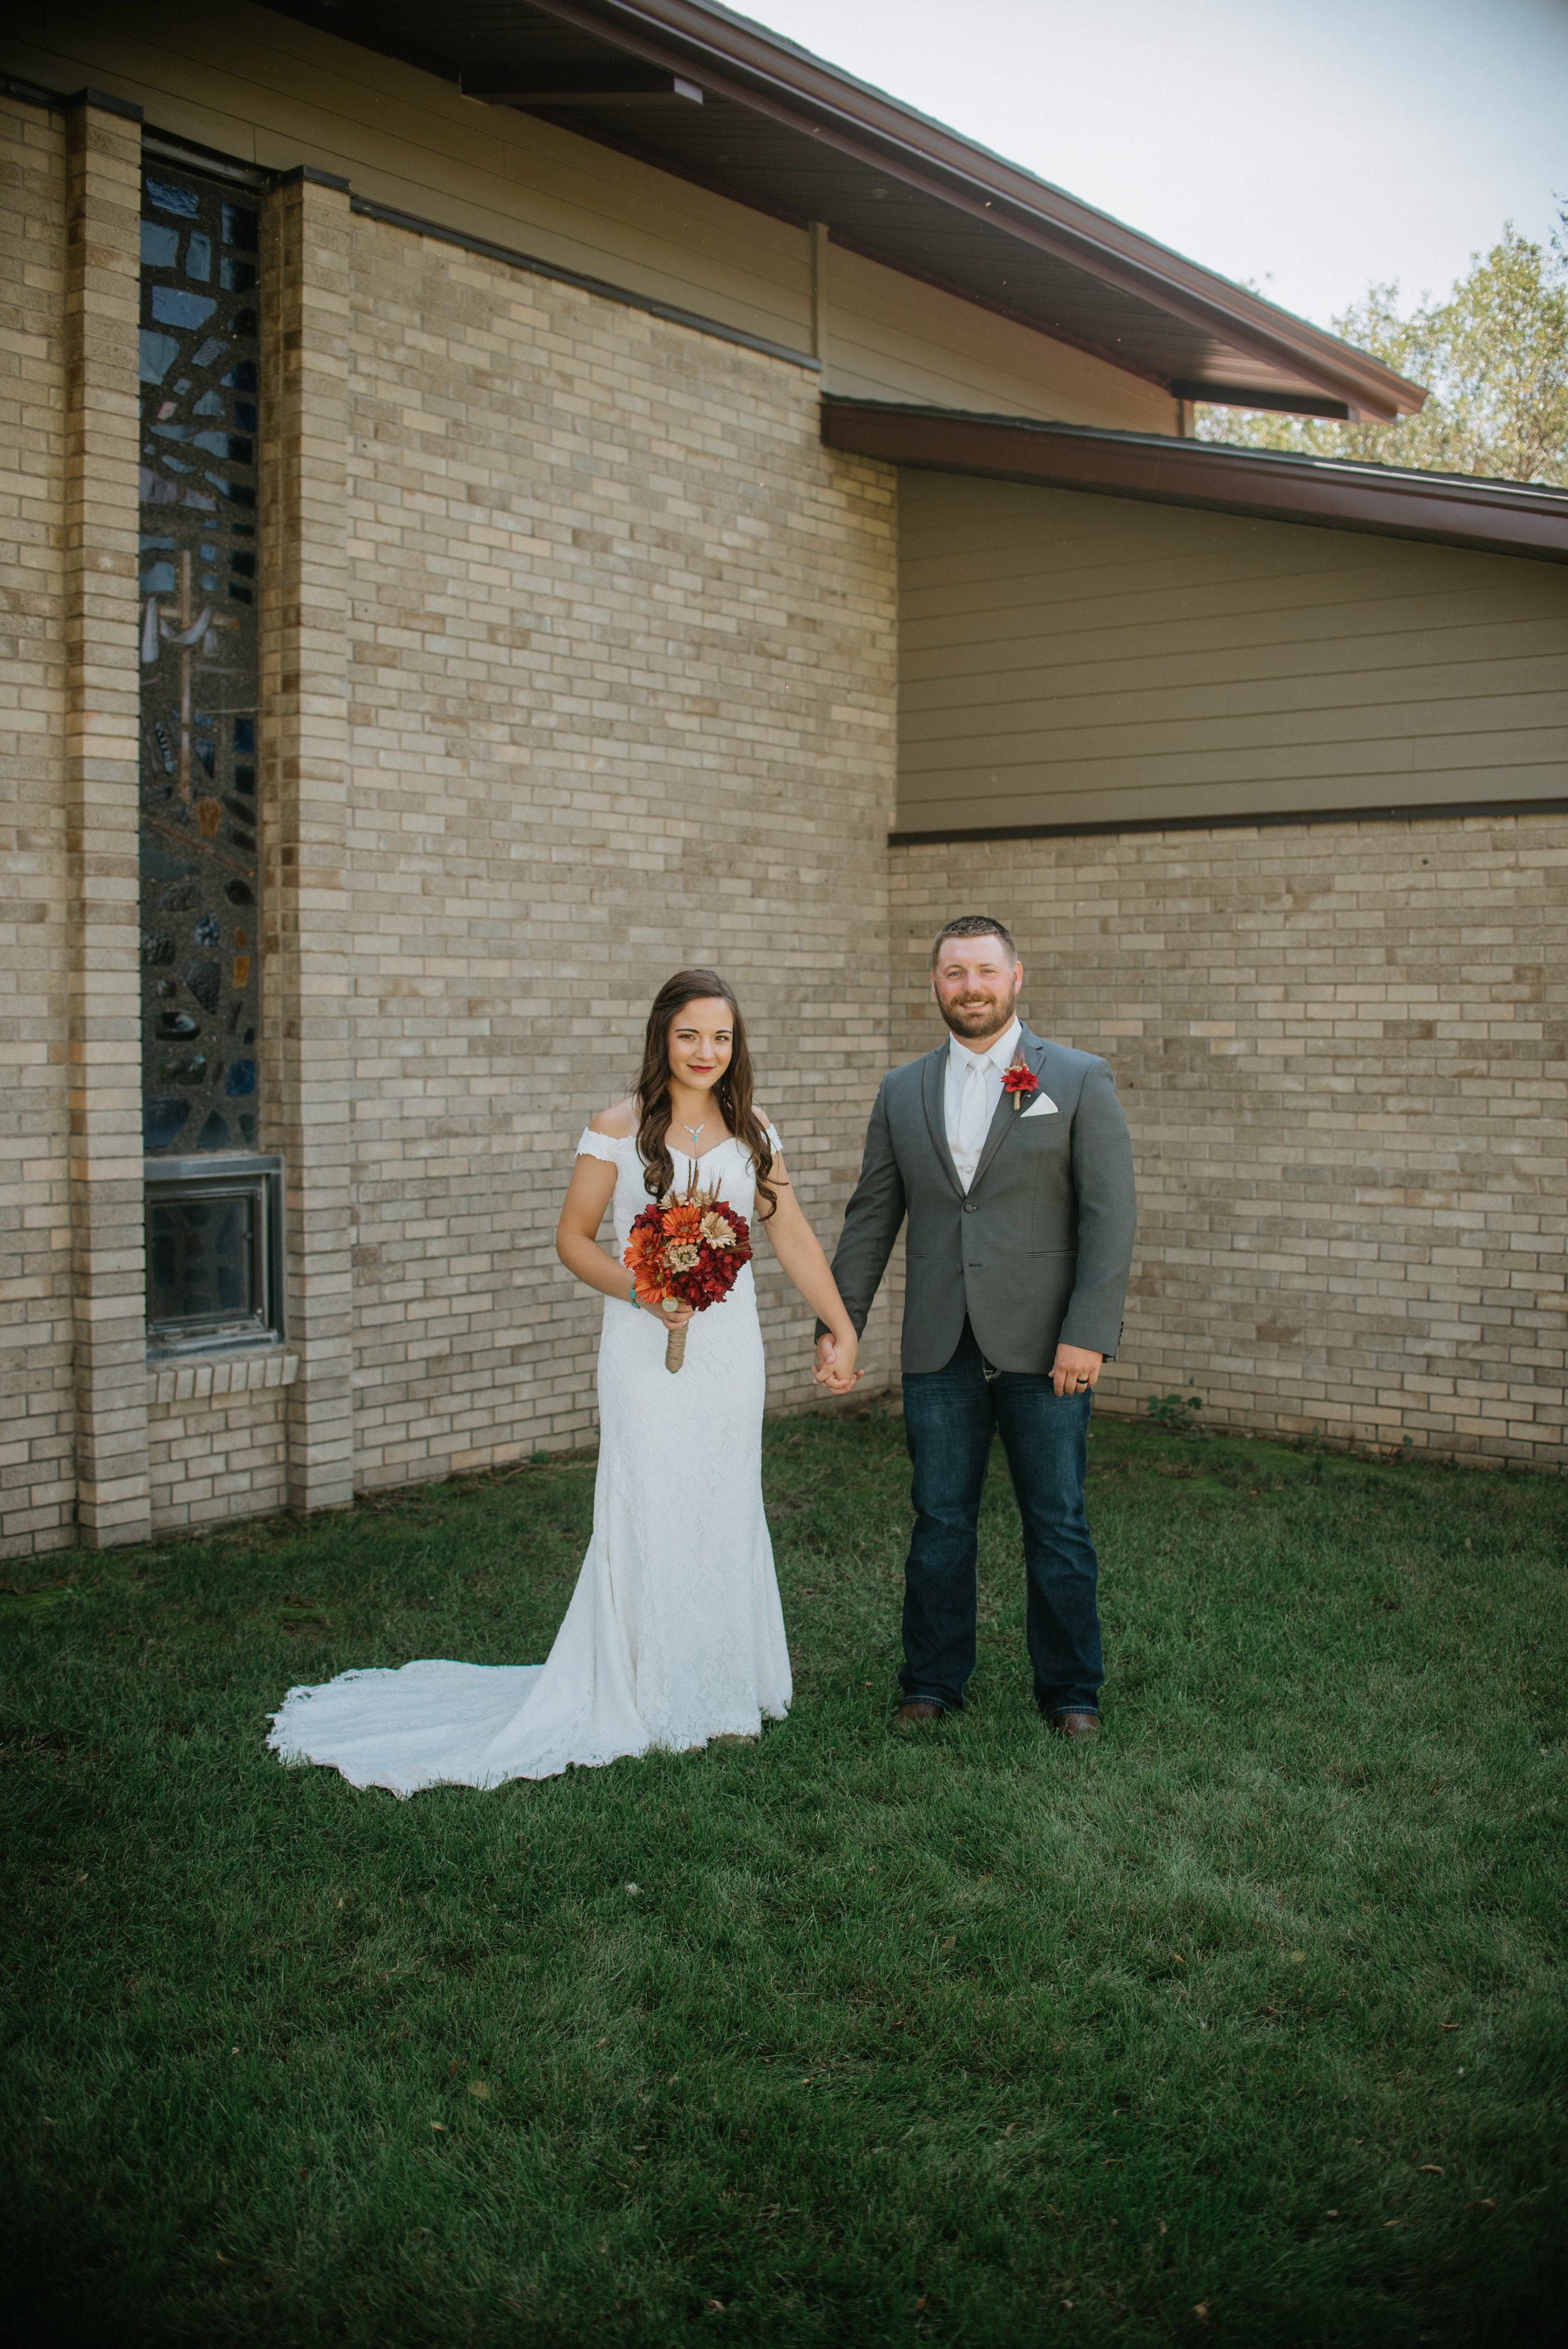 PetersWedding-97.jpg